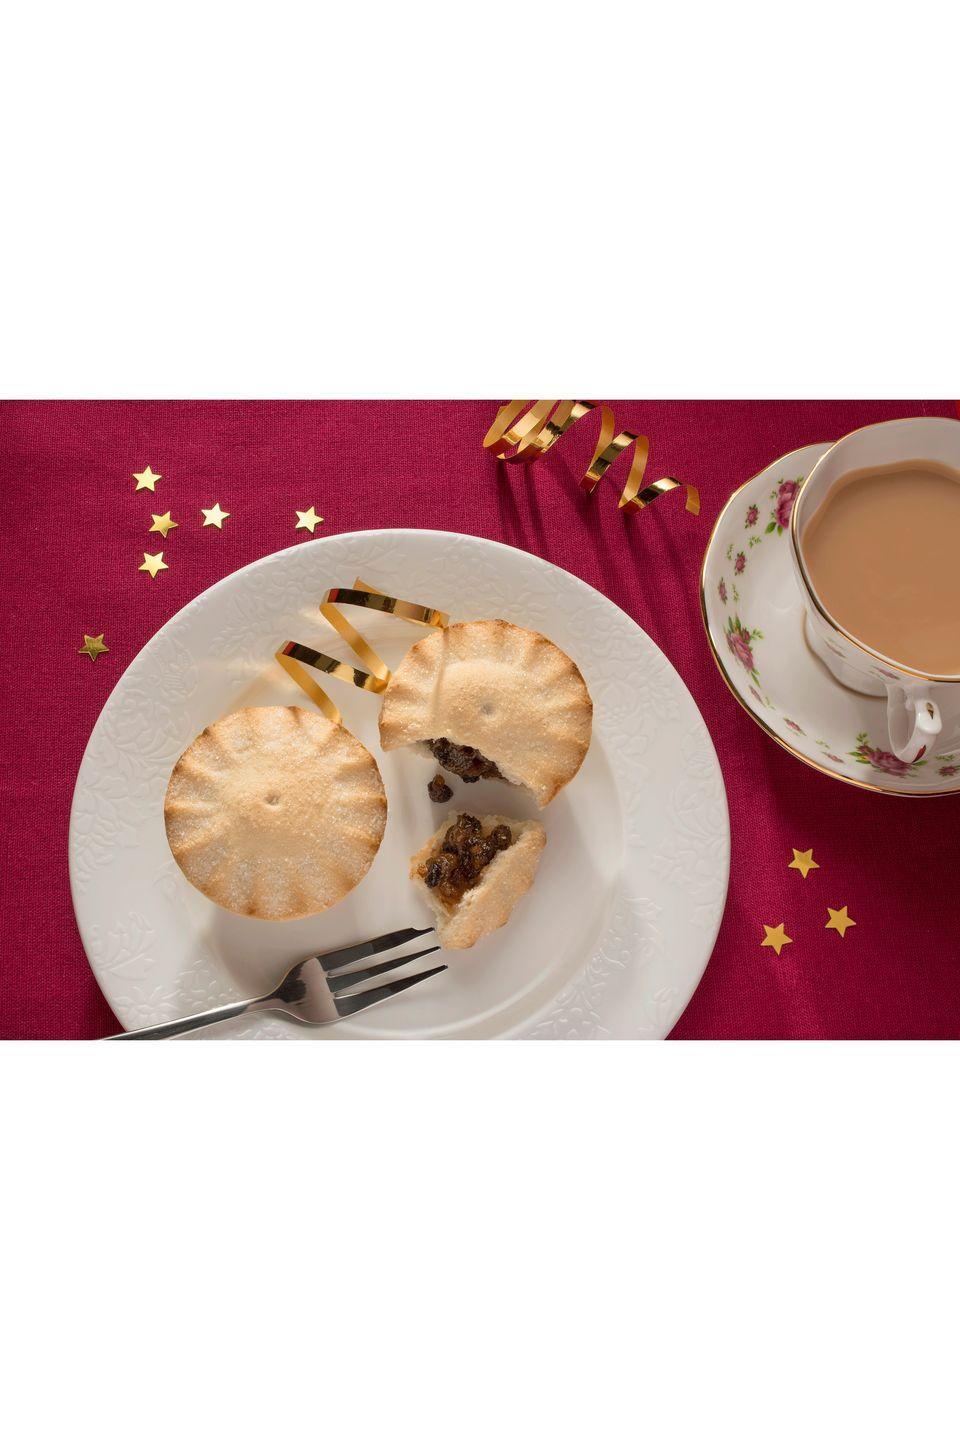 "<p><strong>Overall score: 60/100</strong></p><p>These sizeable mince pies are baked golden and have a mildly sweet aroma. There is a gentle sweet flavour from the classic mincemeat combination of vine fruits and apple puree. The pastry is buttery but has a thick and dense consistency, which overshadowed the filling. </p><p><strong><a class=""link rapid-noclick-resp"" href=""https://go.redirectingat.com?id=127X1599956&url=https%3A%2F%2Fwww.ocado.com%2Fproducts%2Flovemore-gluten-free-luxury-mince-pies-97806011&sref=https%3A%2F%2Fwww.goodhousekeeping.com%2Fuk%2Ffood%2Ffood-reviews%2Fg23783723%2Fbuy-the-best-gluten-free-mince-pies-this-christmas%2F"" rel=""nofollow noopener"" target=""_blank"" data-ylk=""slk:BUY NOW"">BUY NOW</a> Ocado, £2.50 for 4 (serves 4) </strong></p>"